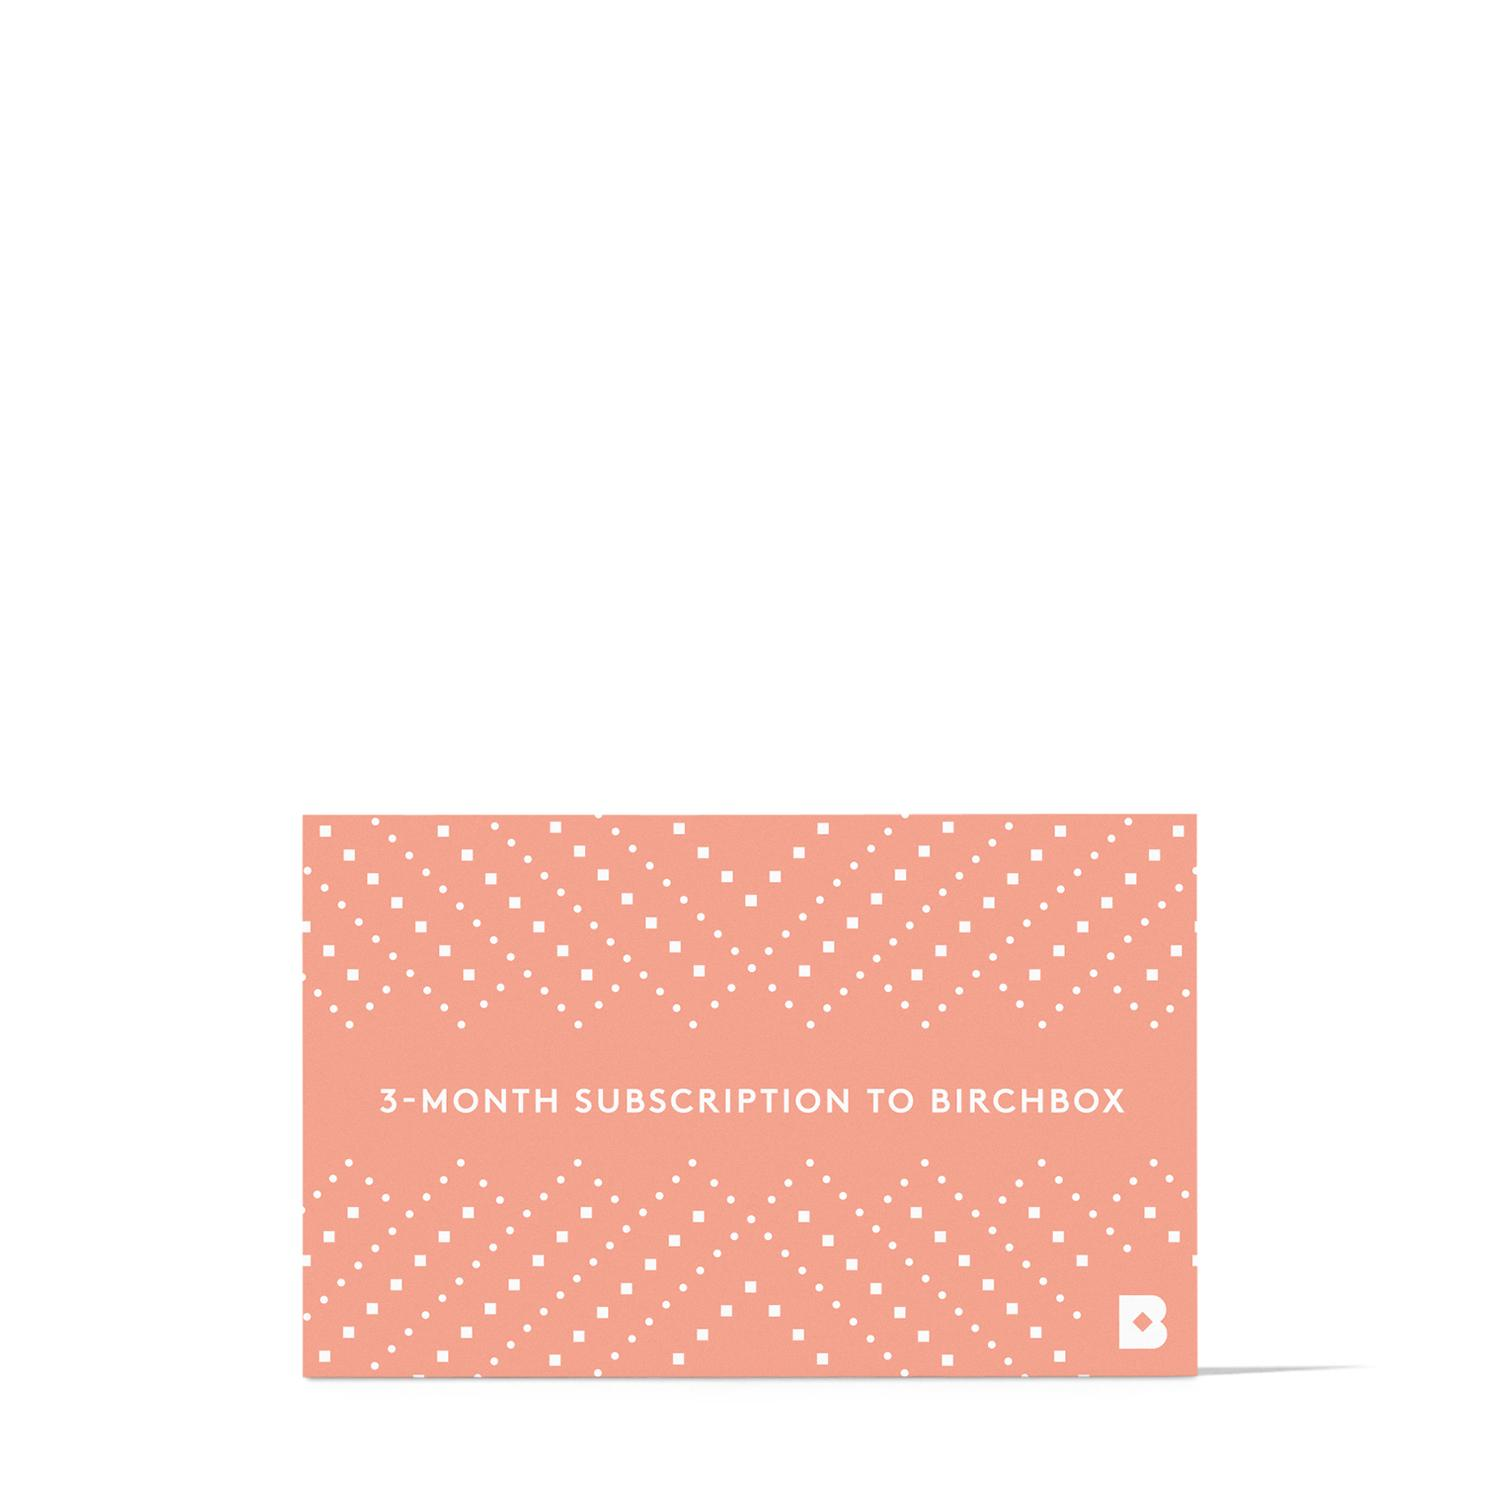 Women's 3-Month Subscription Gift Card to Birchbox // Price: $30 // (Image: Birchbox)<p></p>